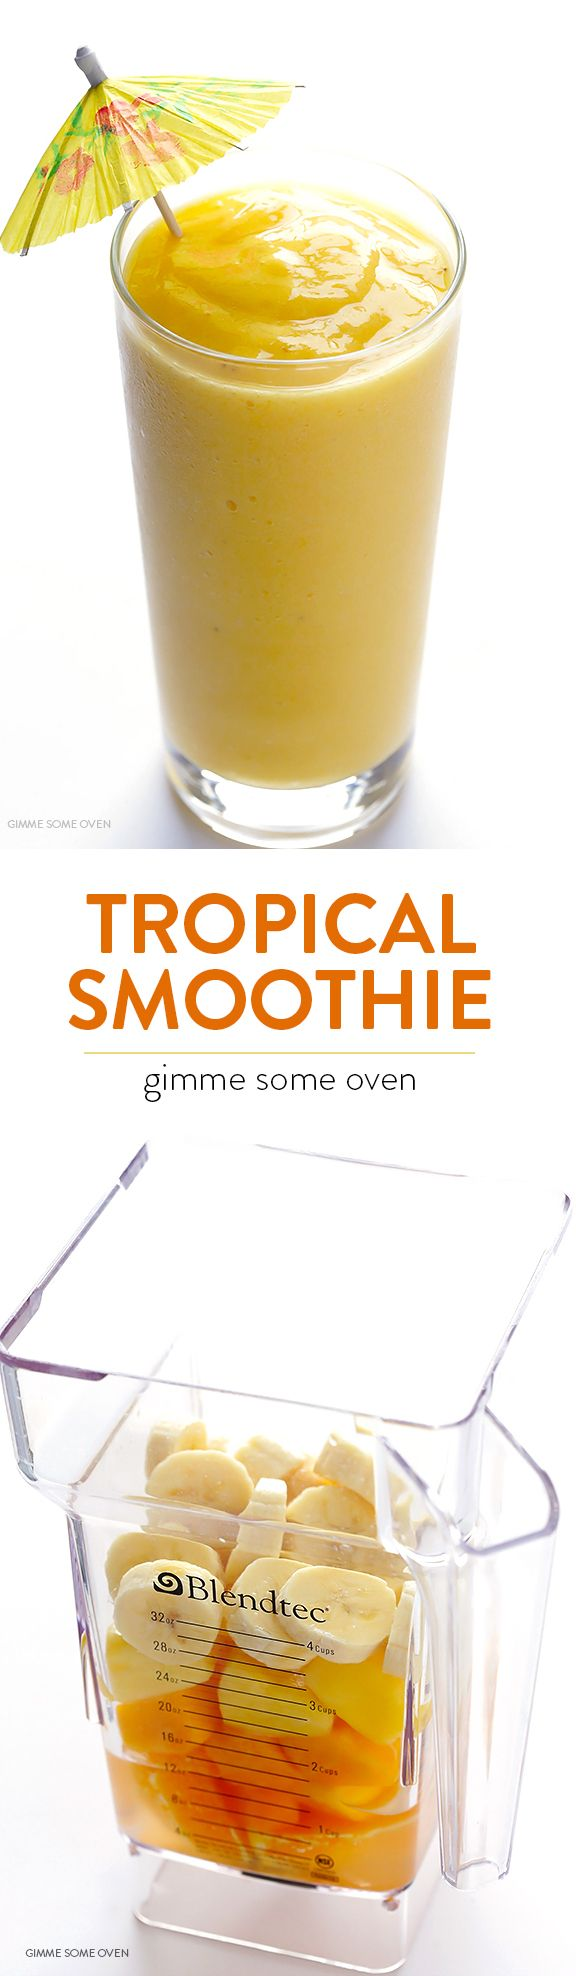 "I Like this TROPICAL SMOOTHIE with Frozen Pineapple chunks and Chia Seeds for ENERGY ♥♥ ""5-Ingredient Tropical Smoothie"" -- overflowing with my favorite fruits, and so easy and delicious 